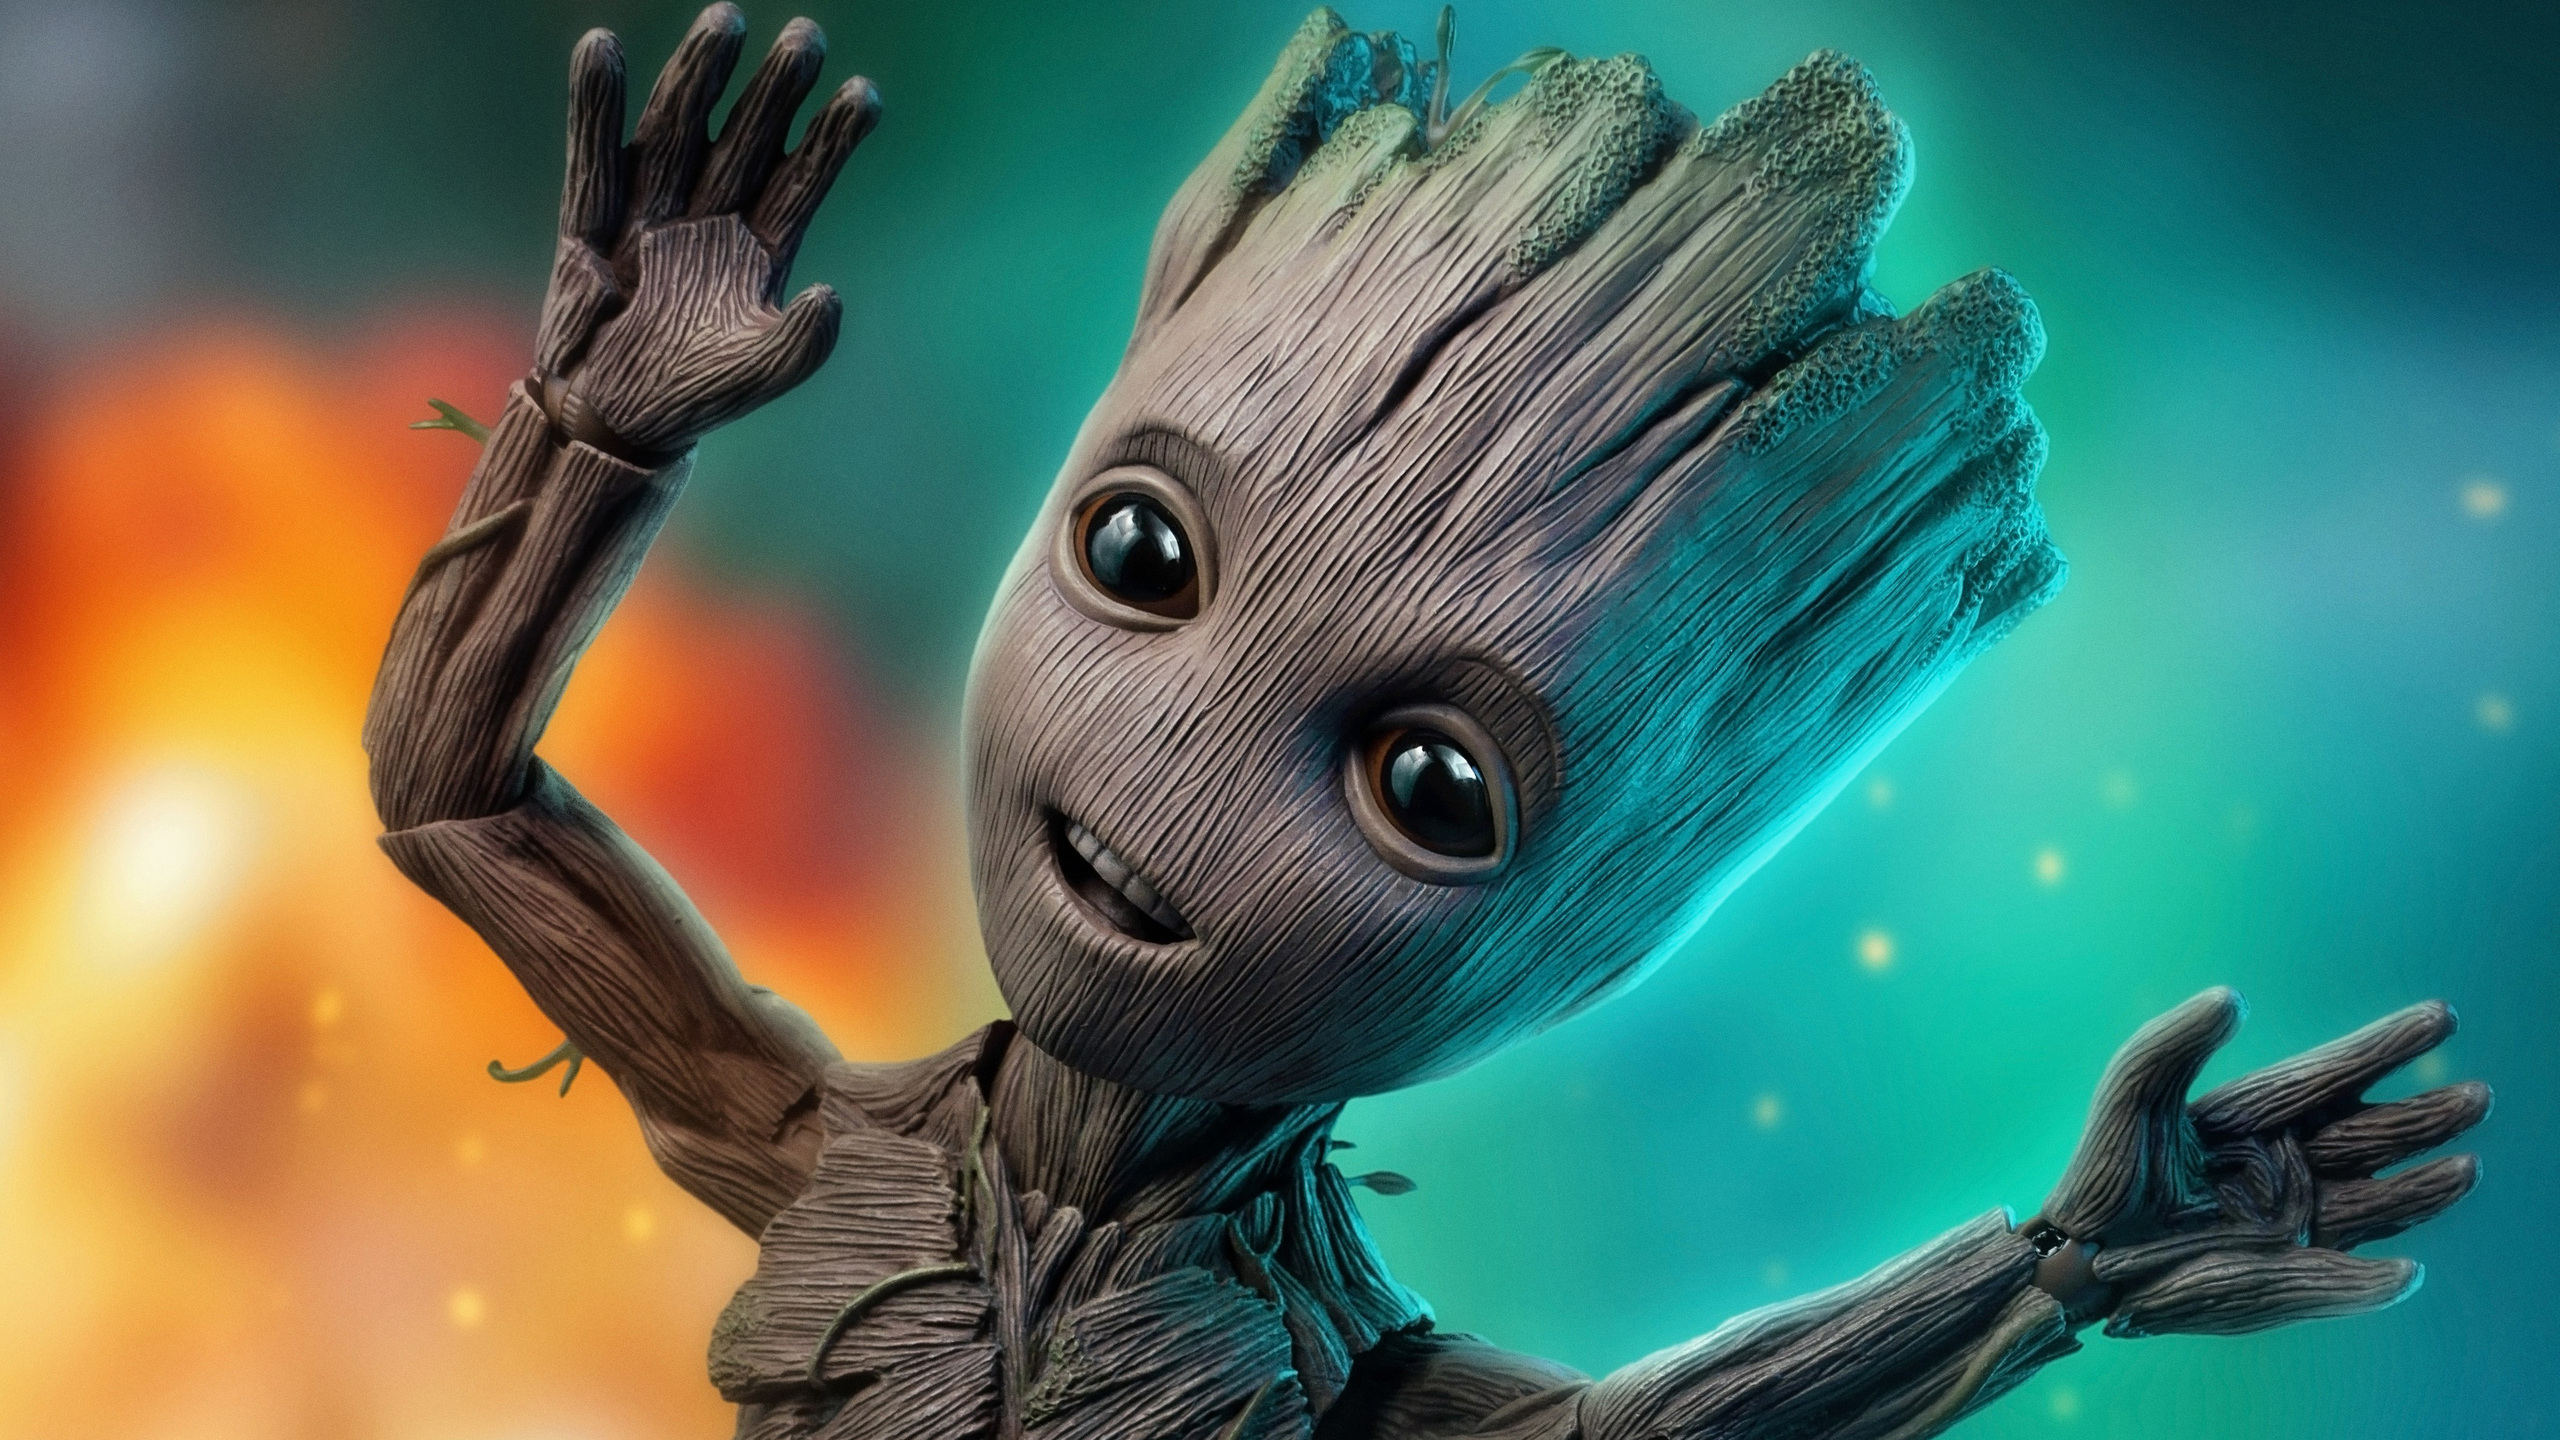 2560x1440 Baby Groot 4k 2018 1440P Resolution HD 4k